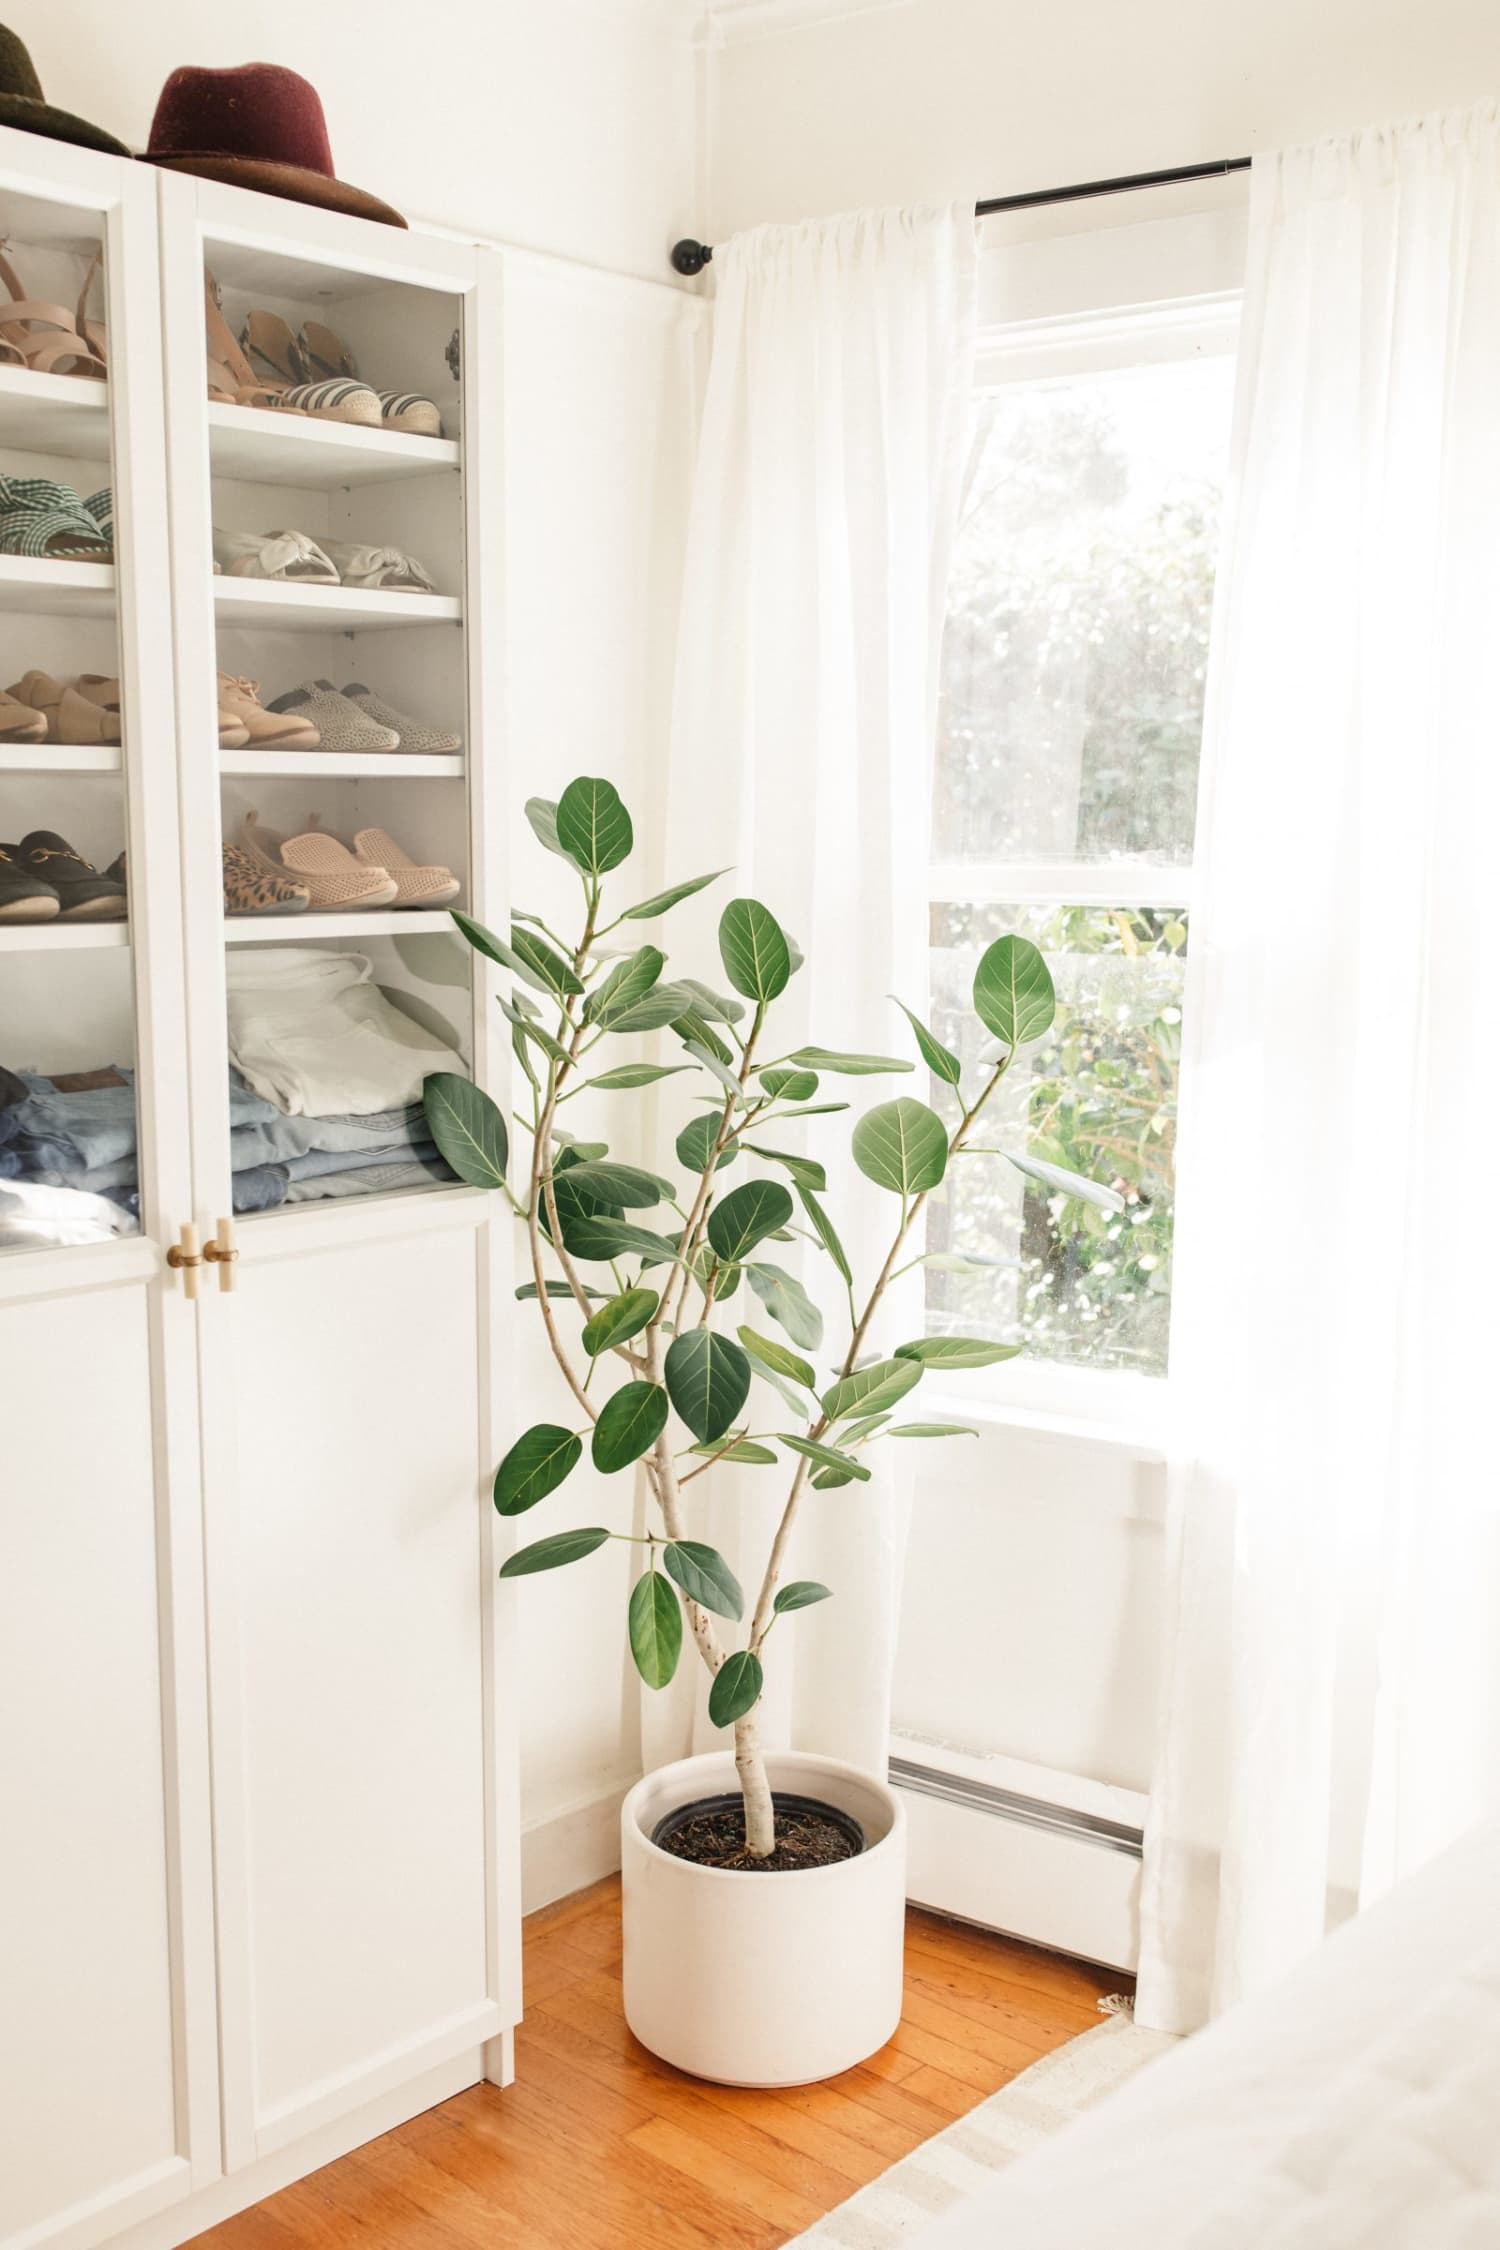 Ficus Audrey is 2020's Answer to the Fiddle-Leaf Fig Tree, According to Plant Experts